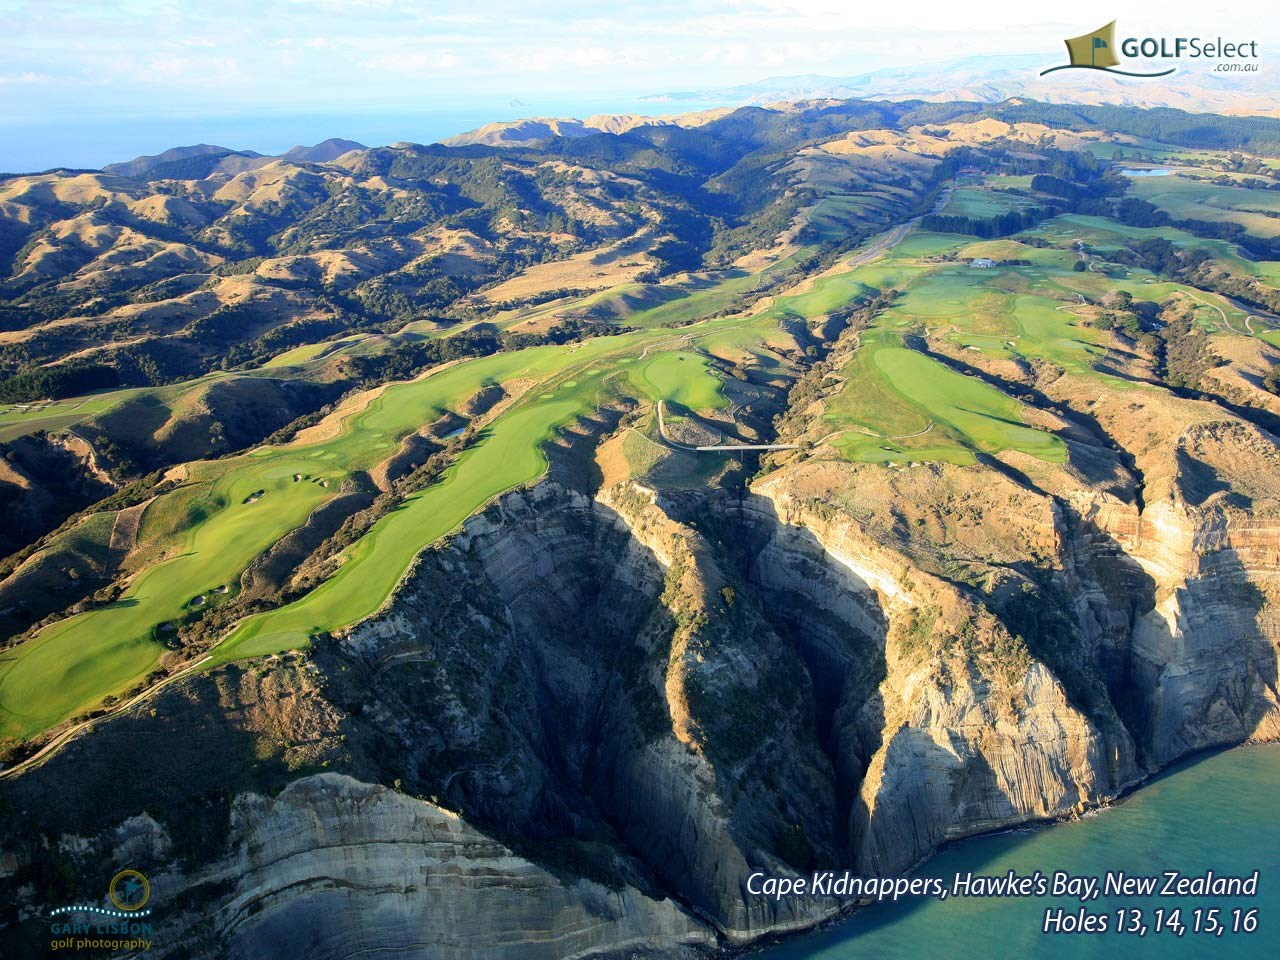 Cape Kidnappers Golf Course Hole 13, 14, 15, 16